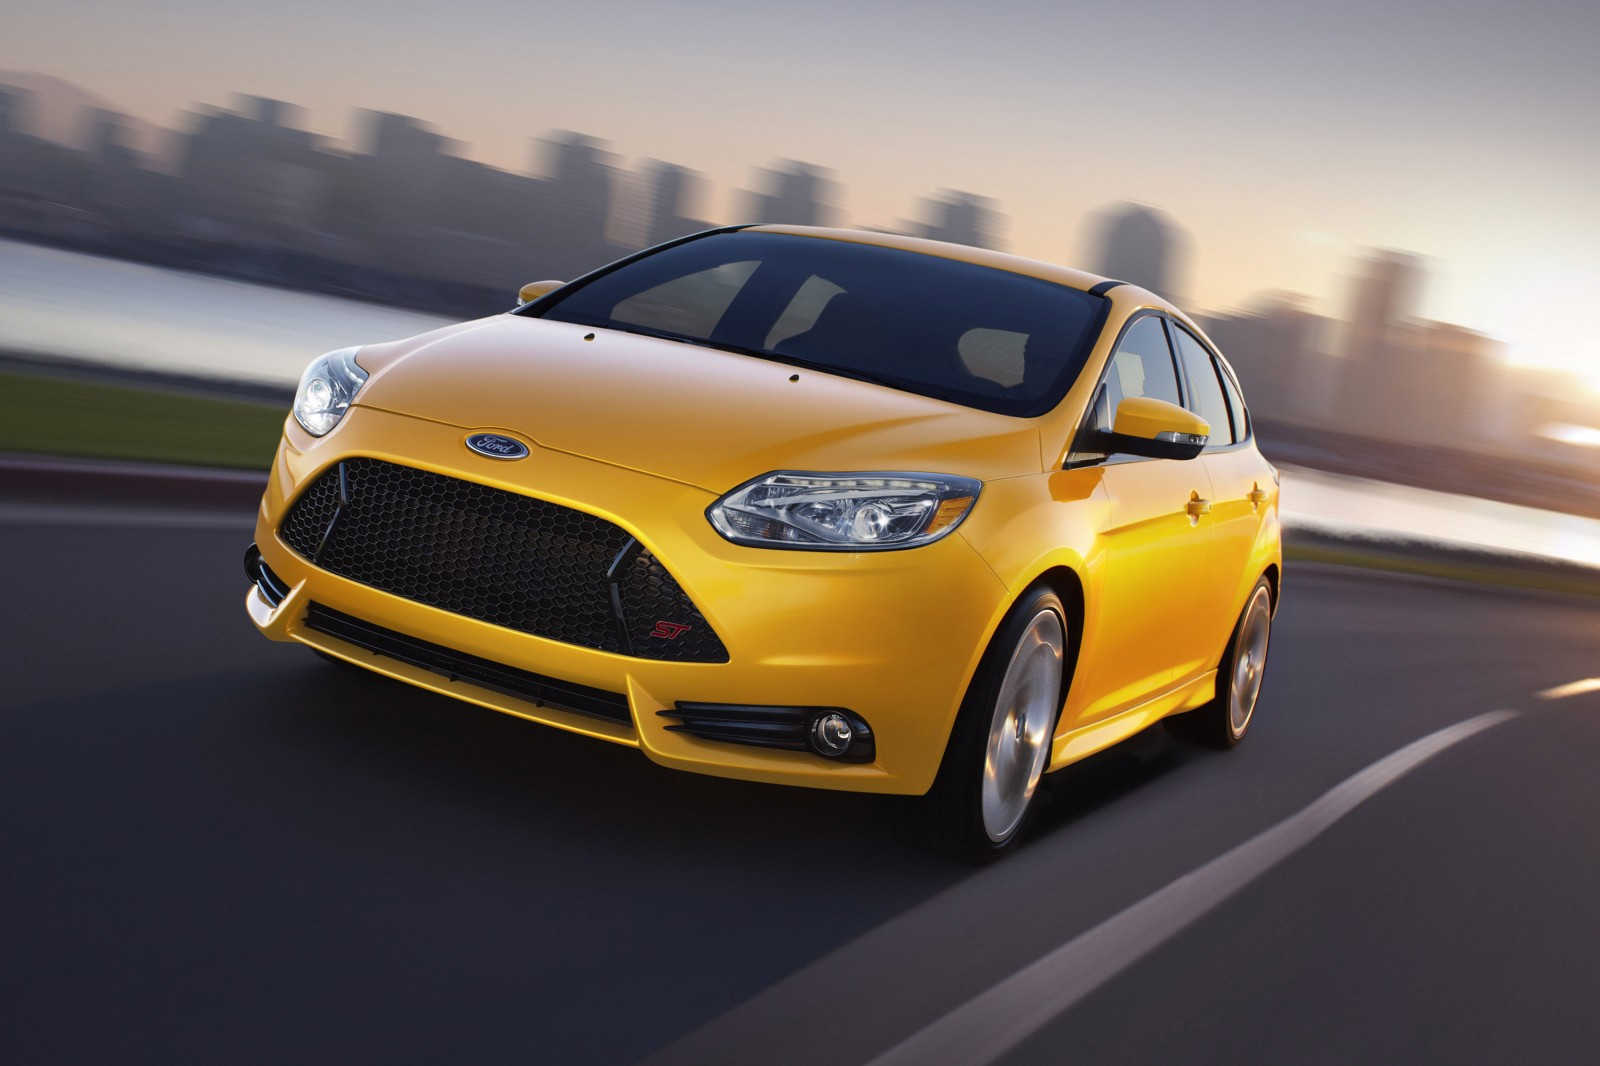 ford focus st 2013 el primer deportivo global de ford lista de carros. Black Bedroom Furniture Sets. Home Design Ideas